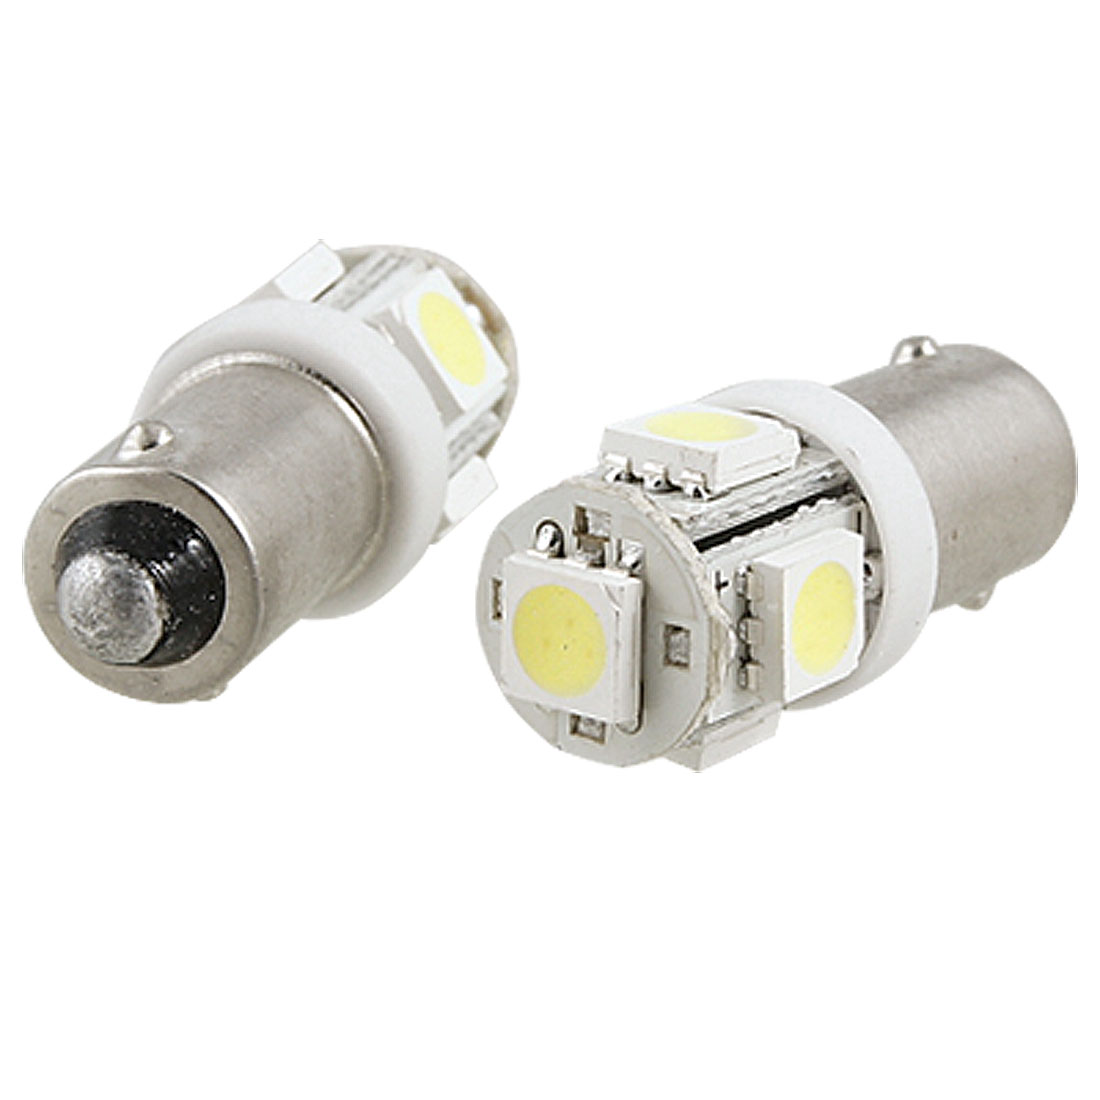 2 Pcs Car Auto BA9S White 5050 SMD 5 LEDs Turn Light Bulbs Lamps